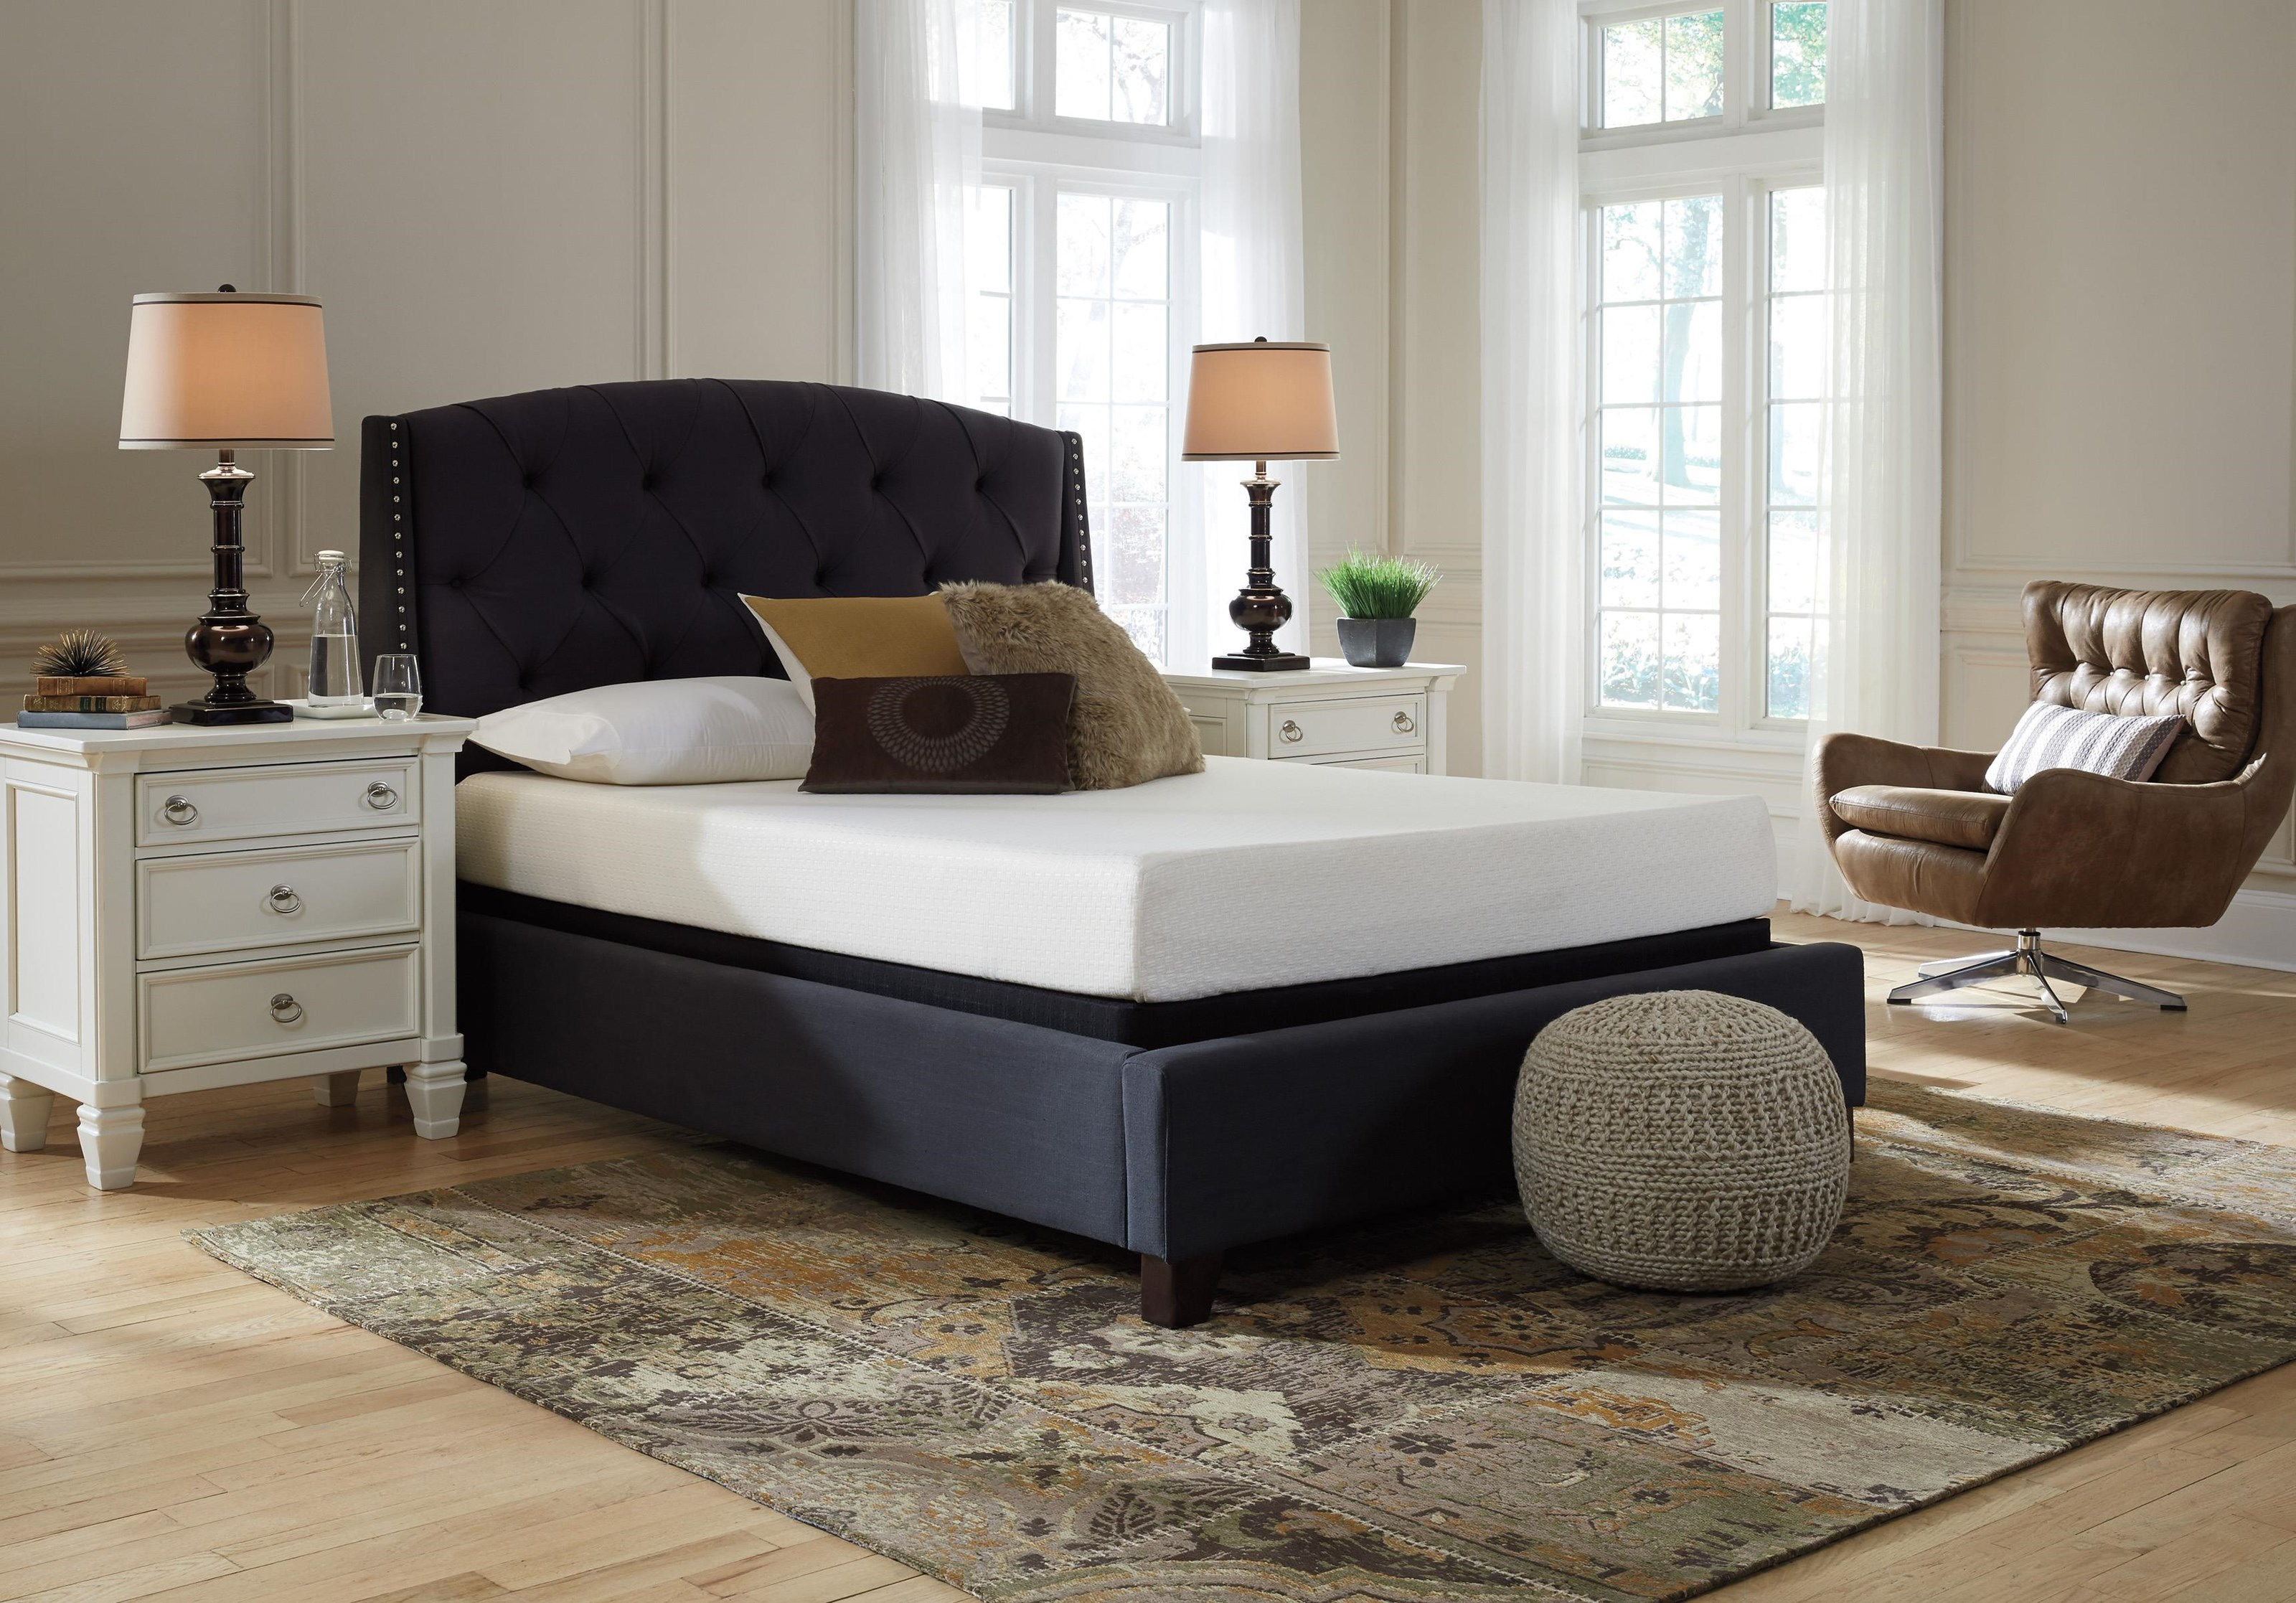 Signature Design by Ashley M726 Chime Queen Memory Foam Mattress - Item Number: M72631